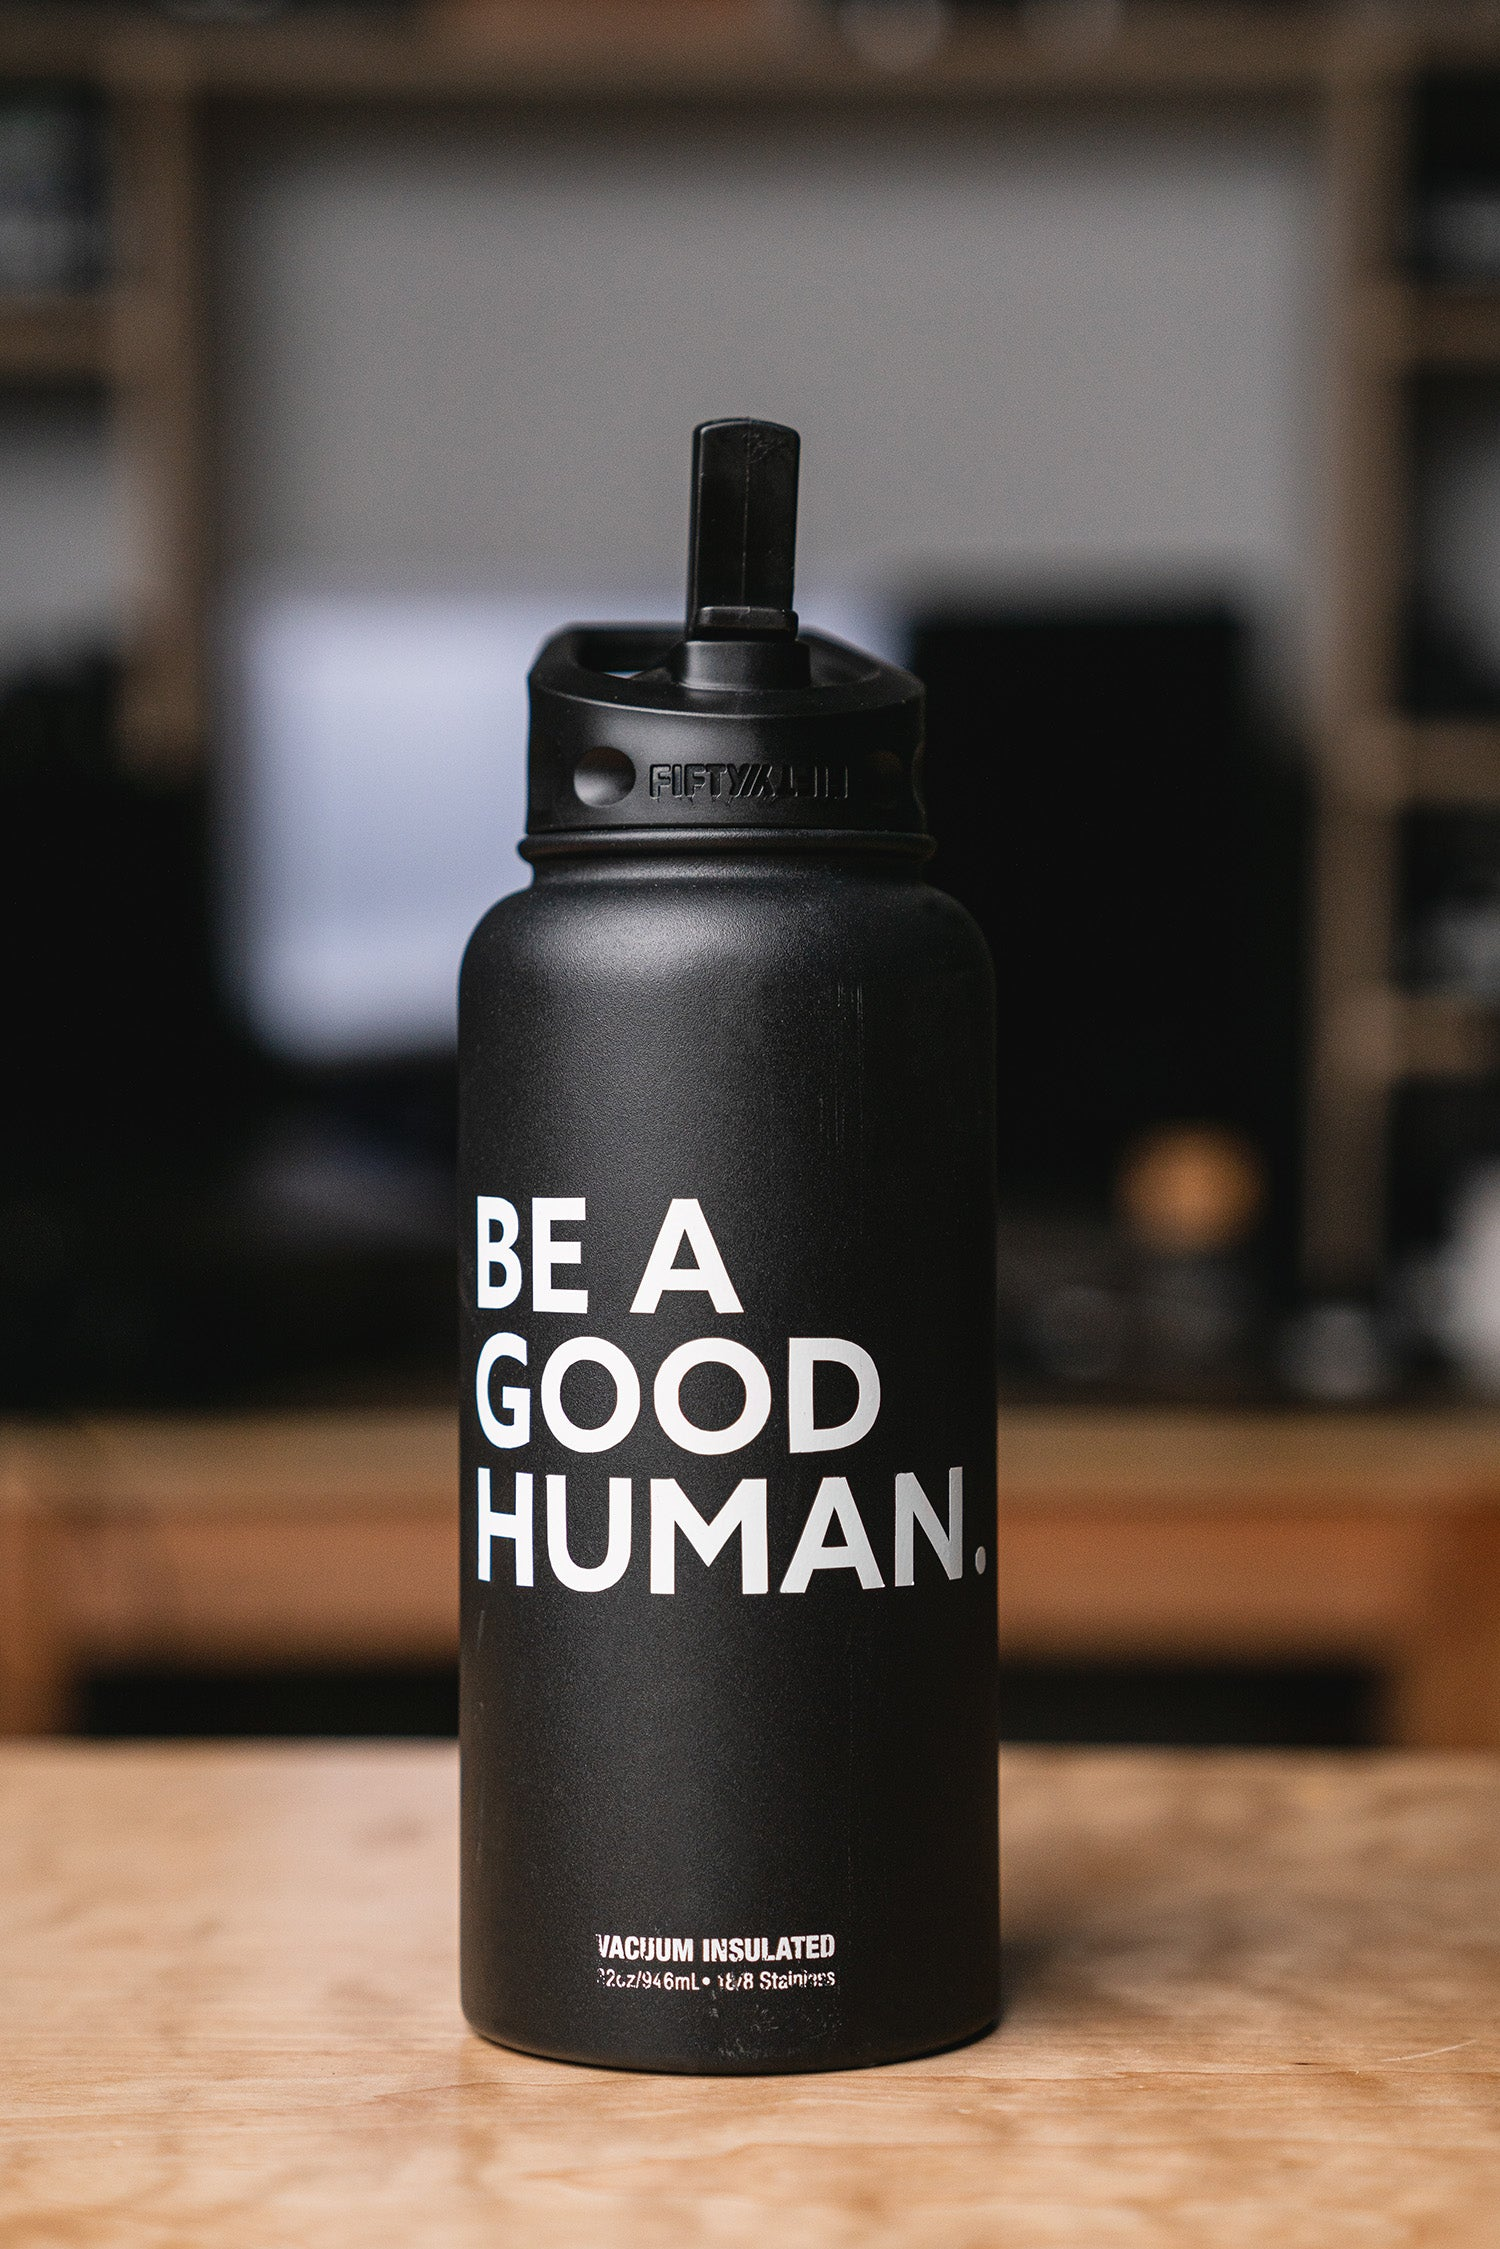 BE A GOOD HUMAN. Vinyl Transfer Sticker